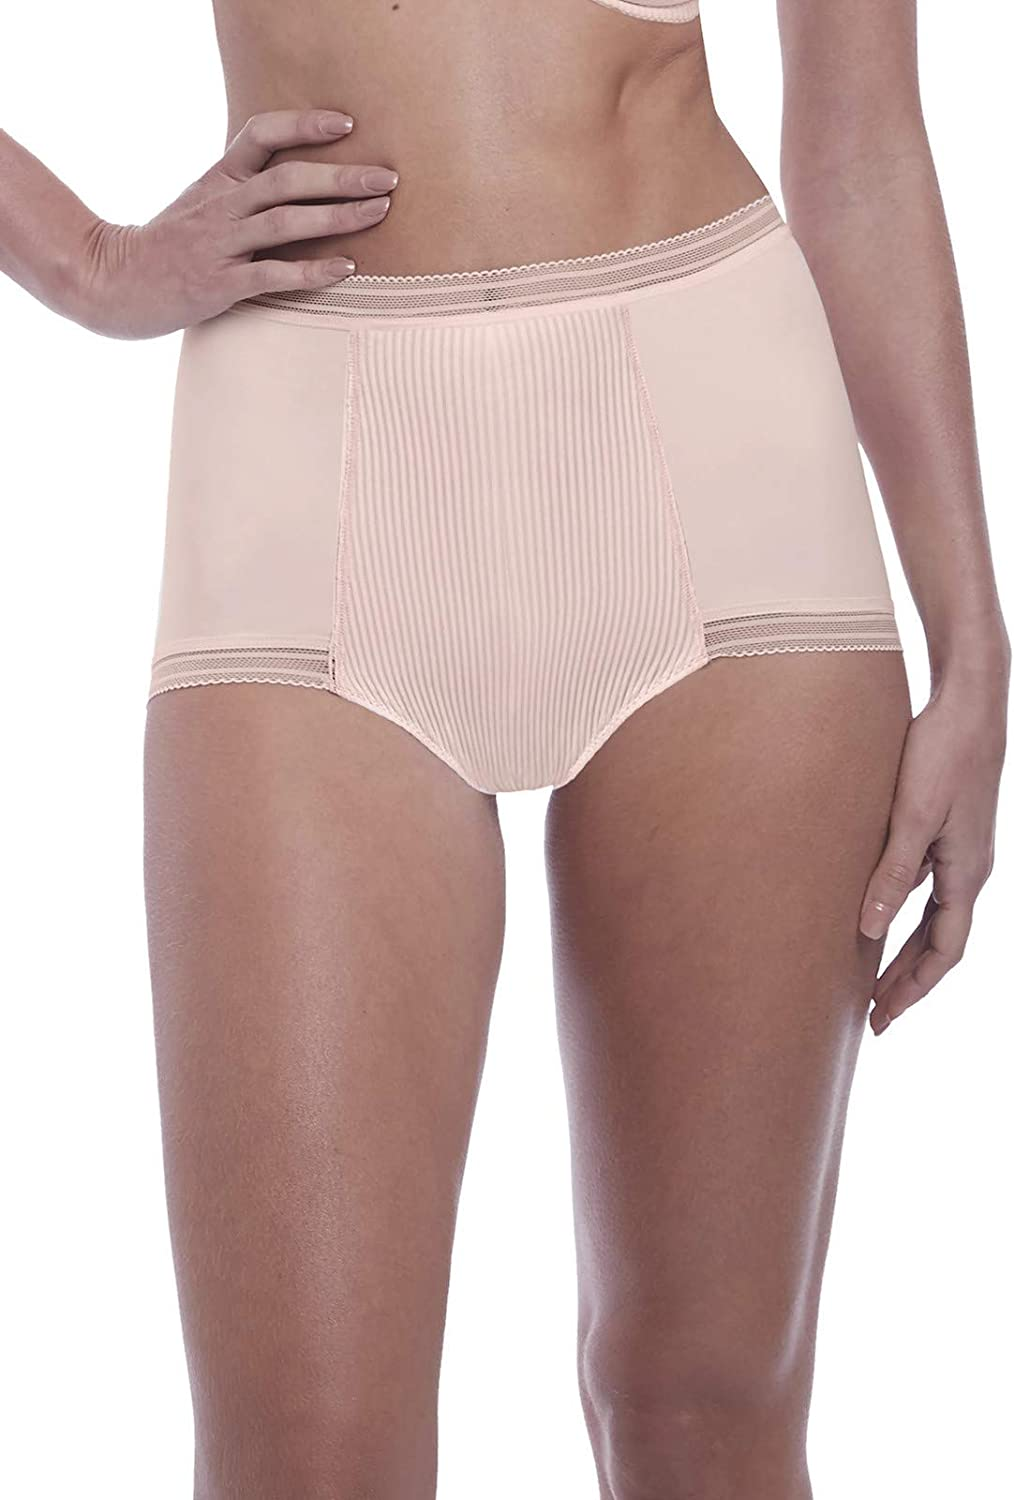 Free shipping Fantasie Women's Fusion Smoothing High outlet Brief Control Waist